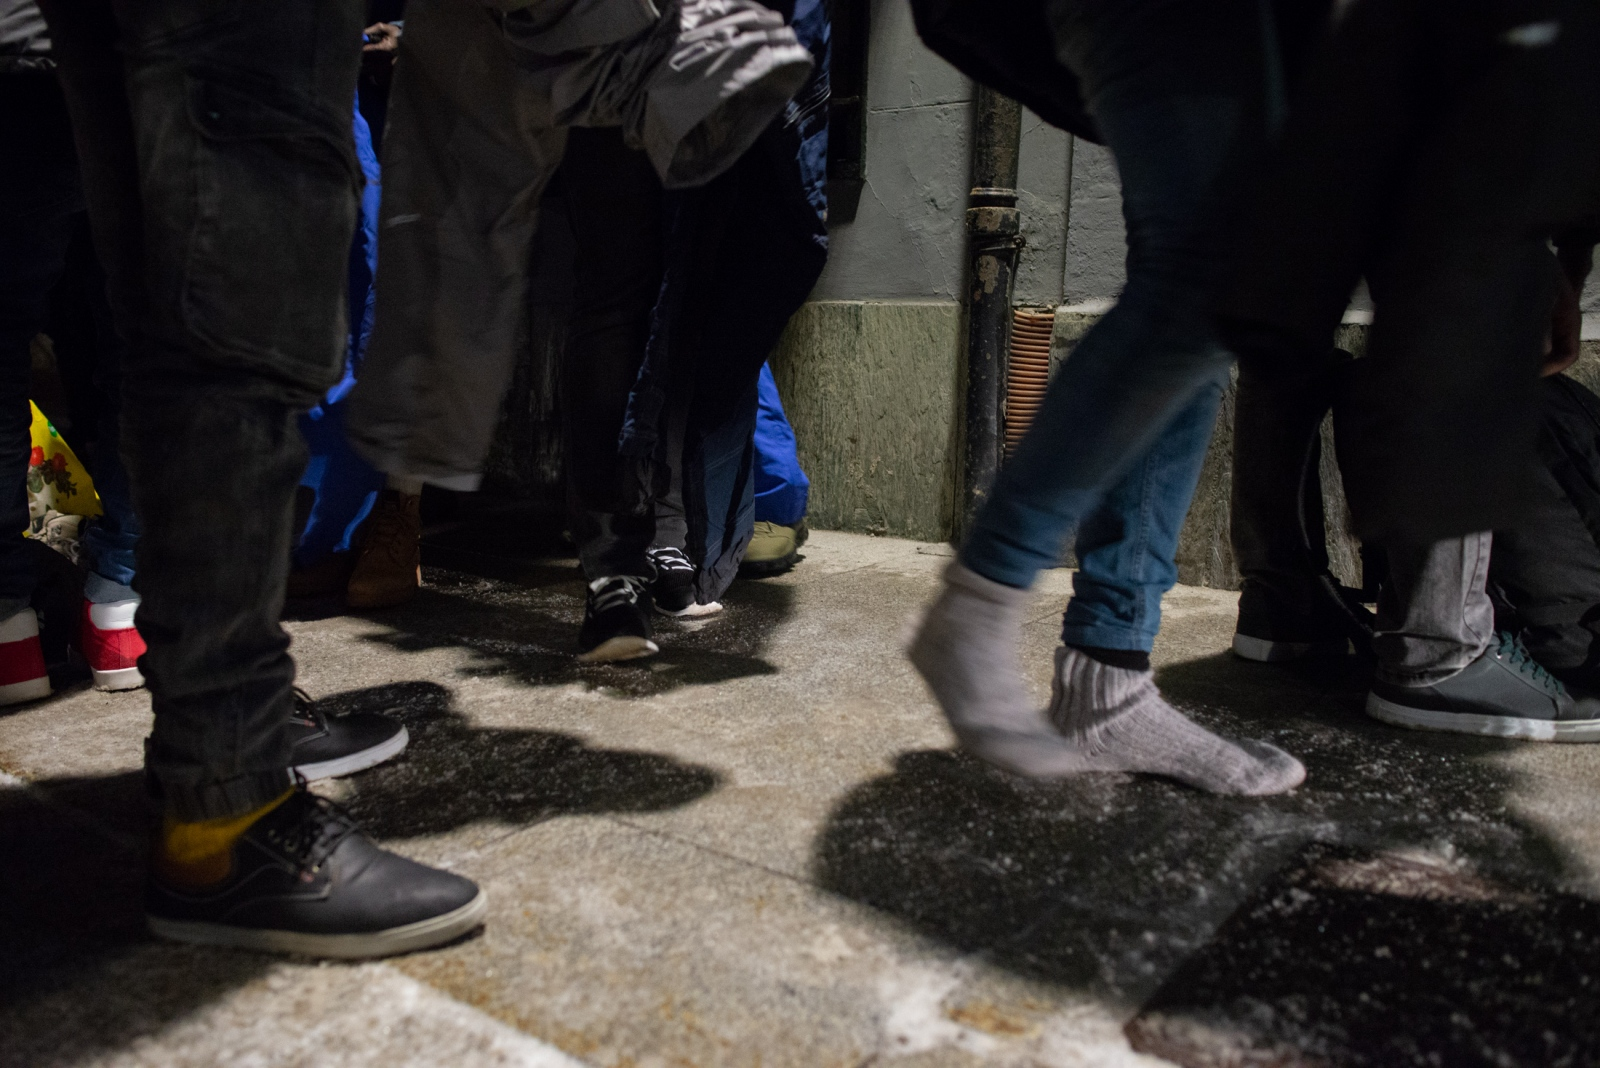 Homeless asylum-seekers are trying on winter shoes and appropriate winter gear donated by locals. When asked, many migrants replied they where going to try to hike into France in the coming days.Northern Italy - December 2018.